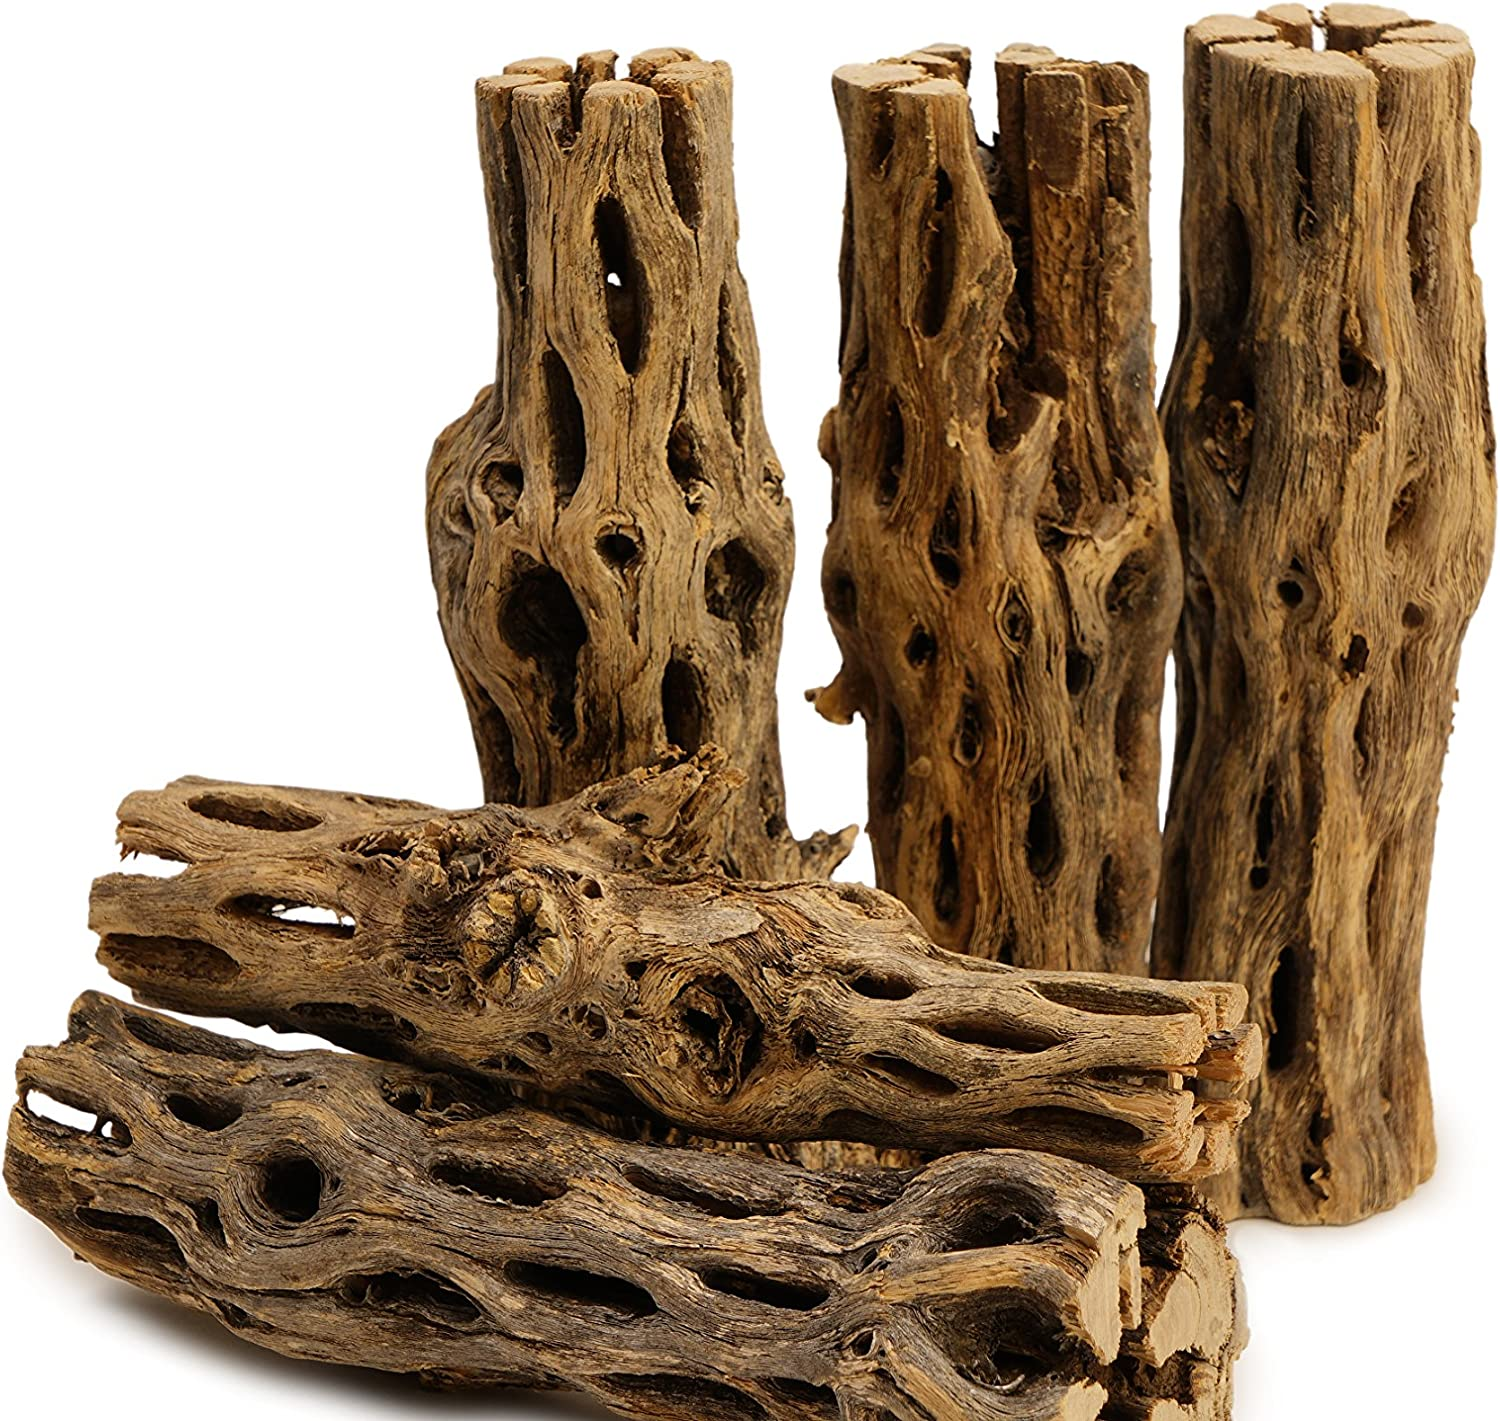 NApremium Natural Cholla Wood | 5 Pieces of 5-6